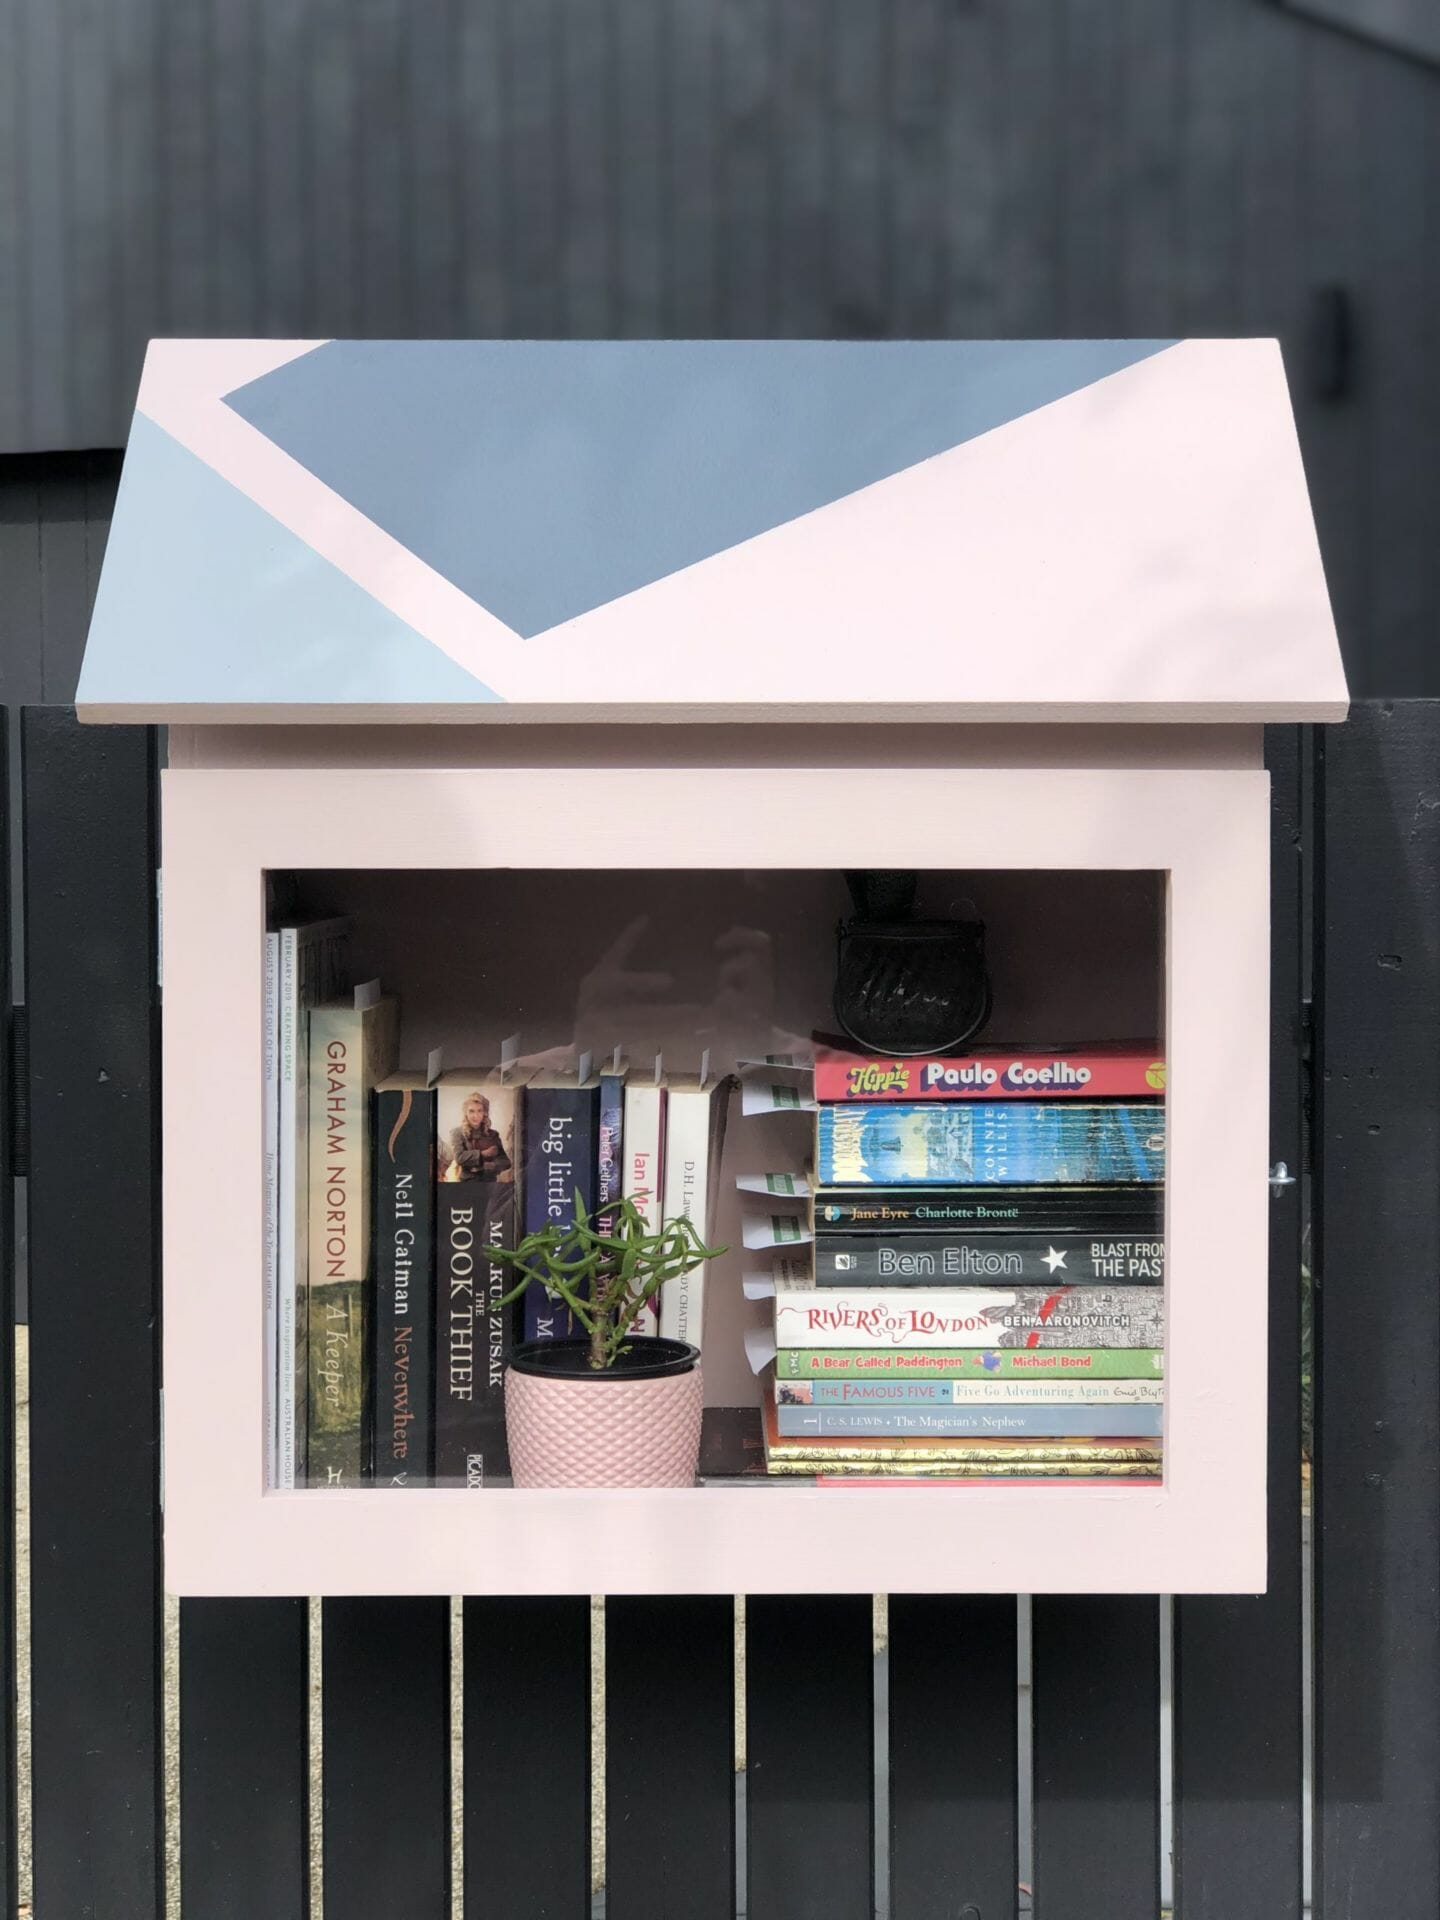 The Little Pink Library